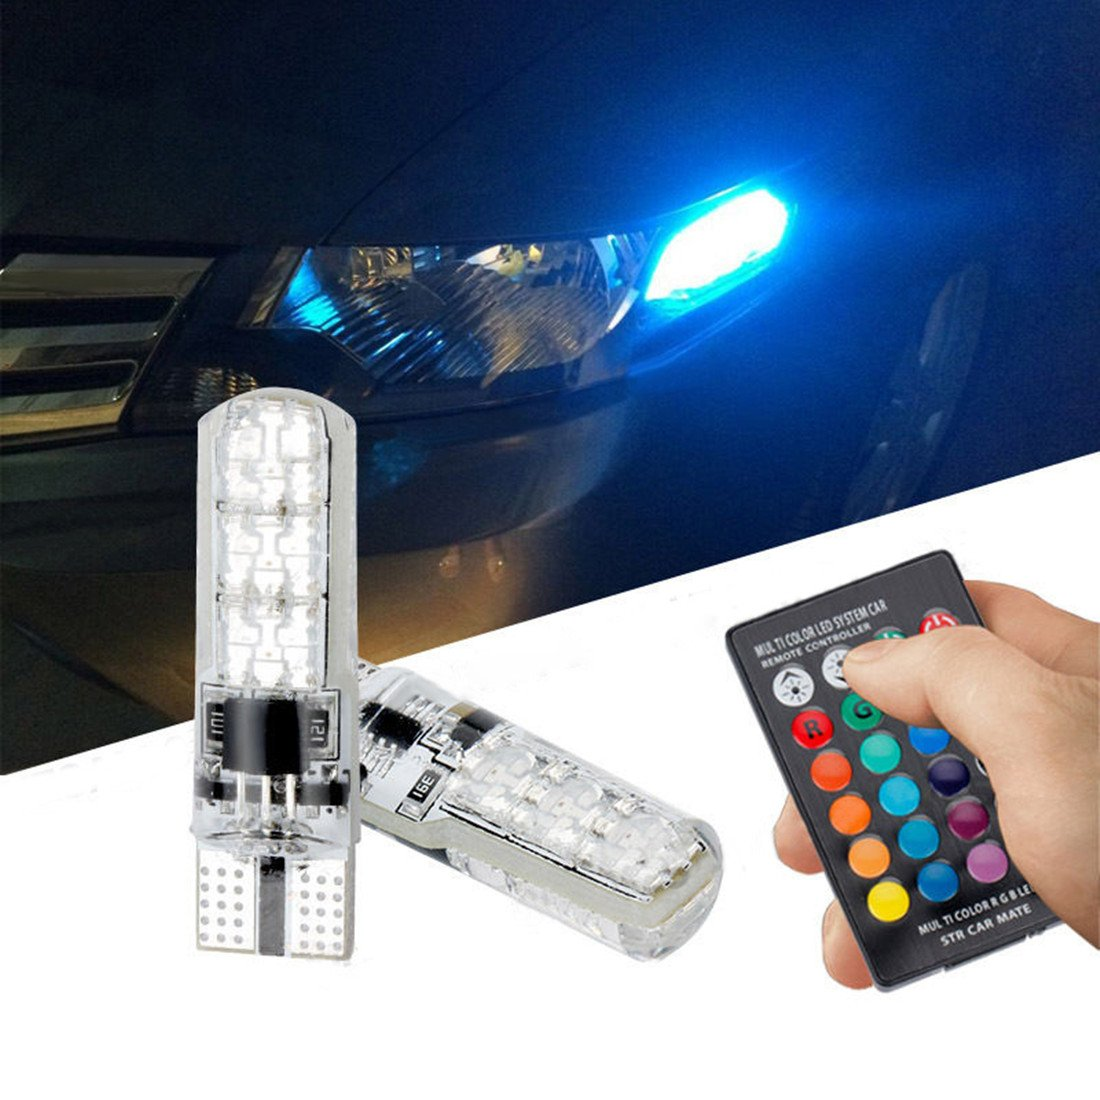 FEZZ Car LED Bulbs Atmosphere Light T10 5050 6SMD RGB Silicone for Auto Side marker Indicator Dome Reading License plate Lights Lamps with Remote Controller Strobe FZ0069